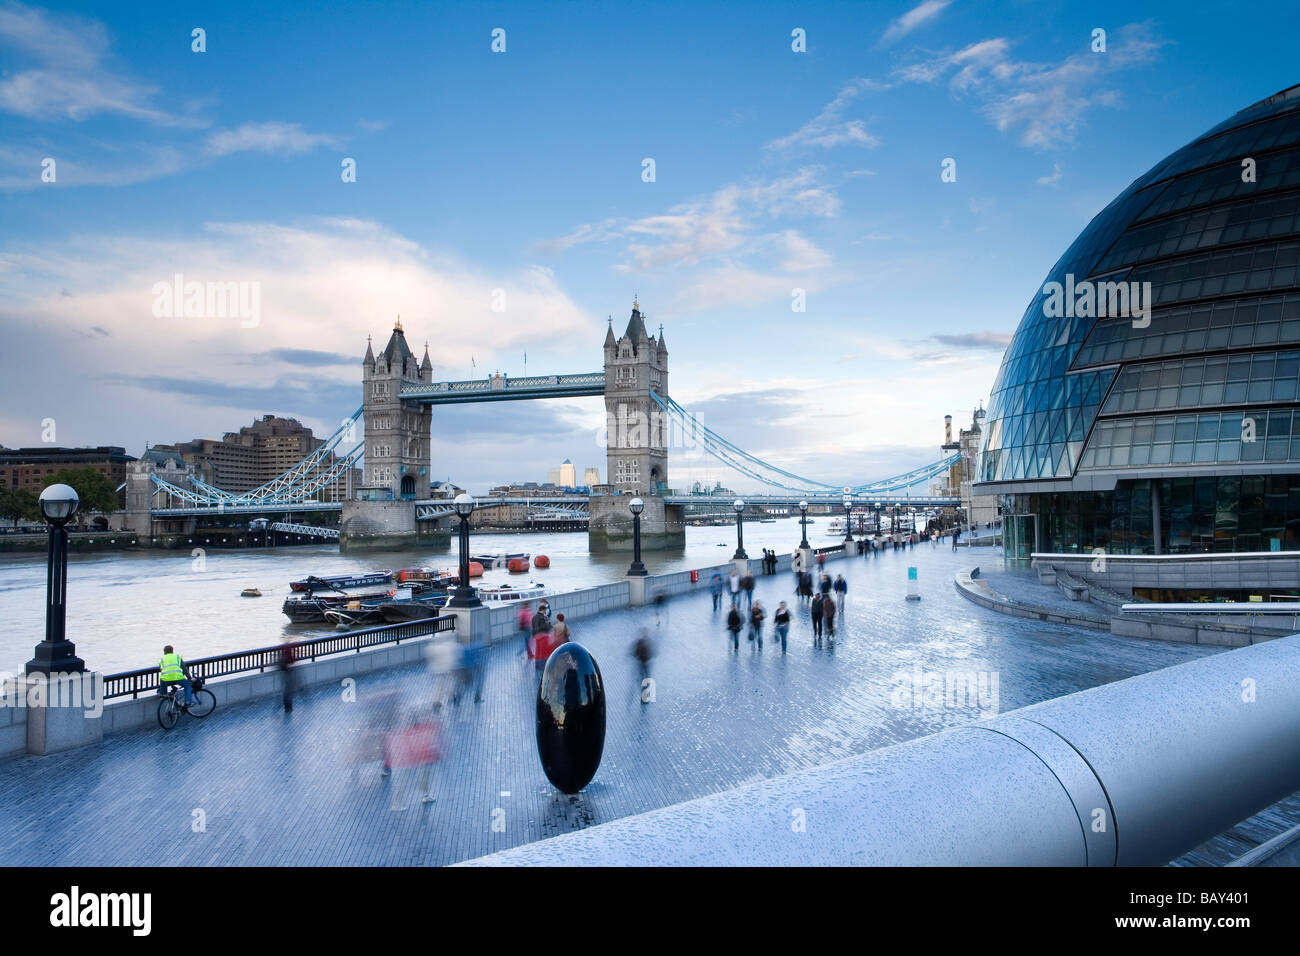 Tower Bridge and New City Hall of London at the south bank of River Themse, Southwark, London, England, Europe - Stock Image